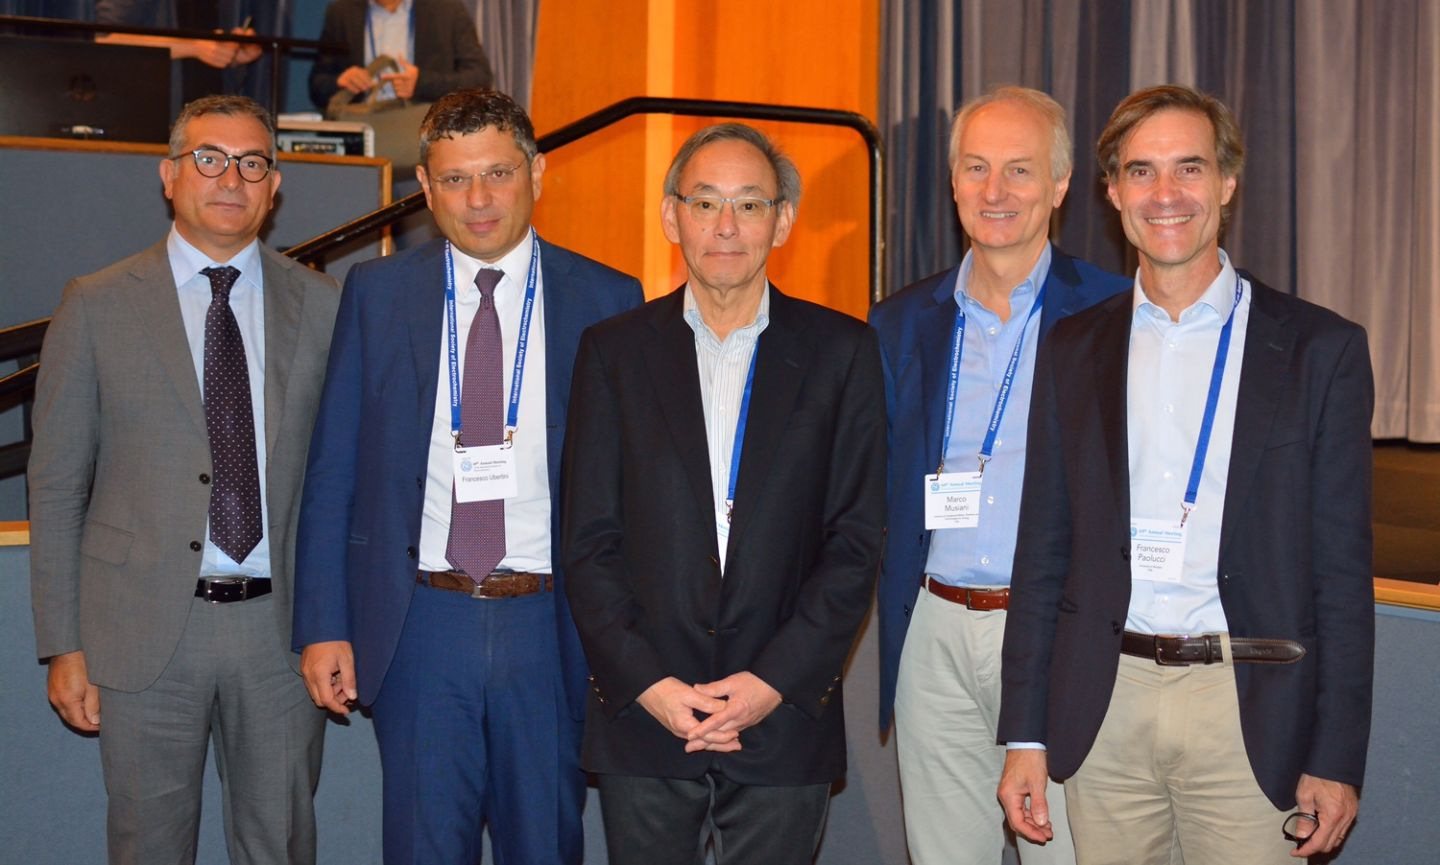 69° Annual Meeting of the International Society of Electrochemistry